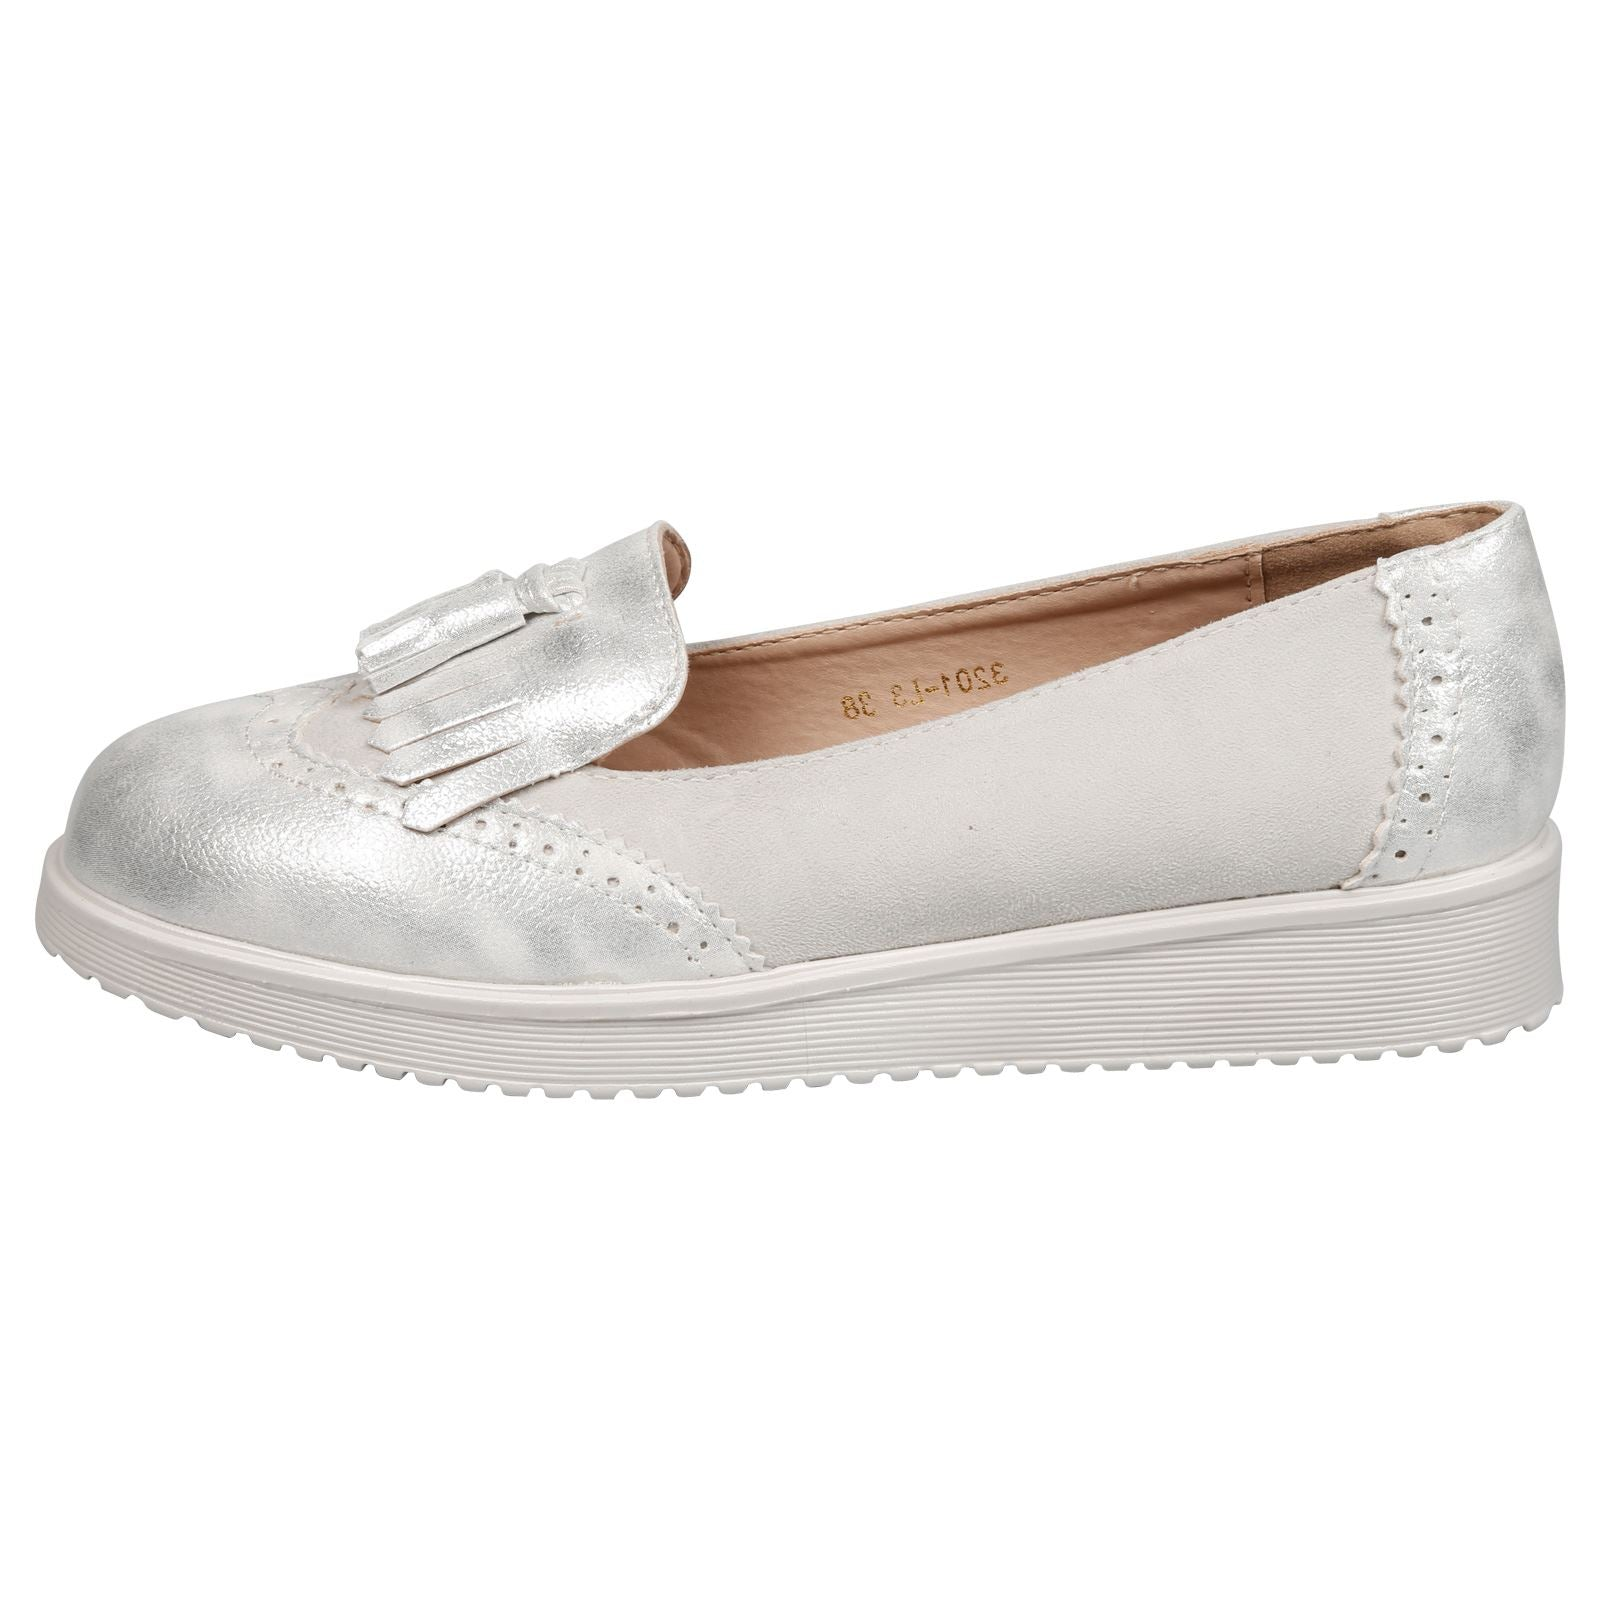 Leilani Two Tone Tassel Loafers in Grey Faux Suede & Silver Shimmer